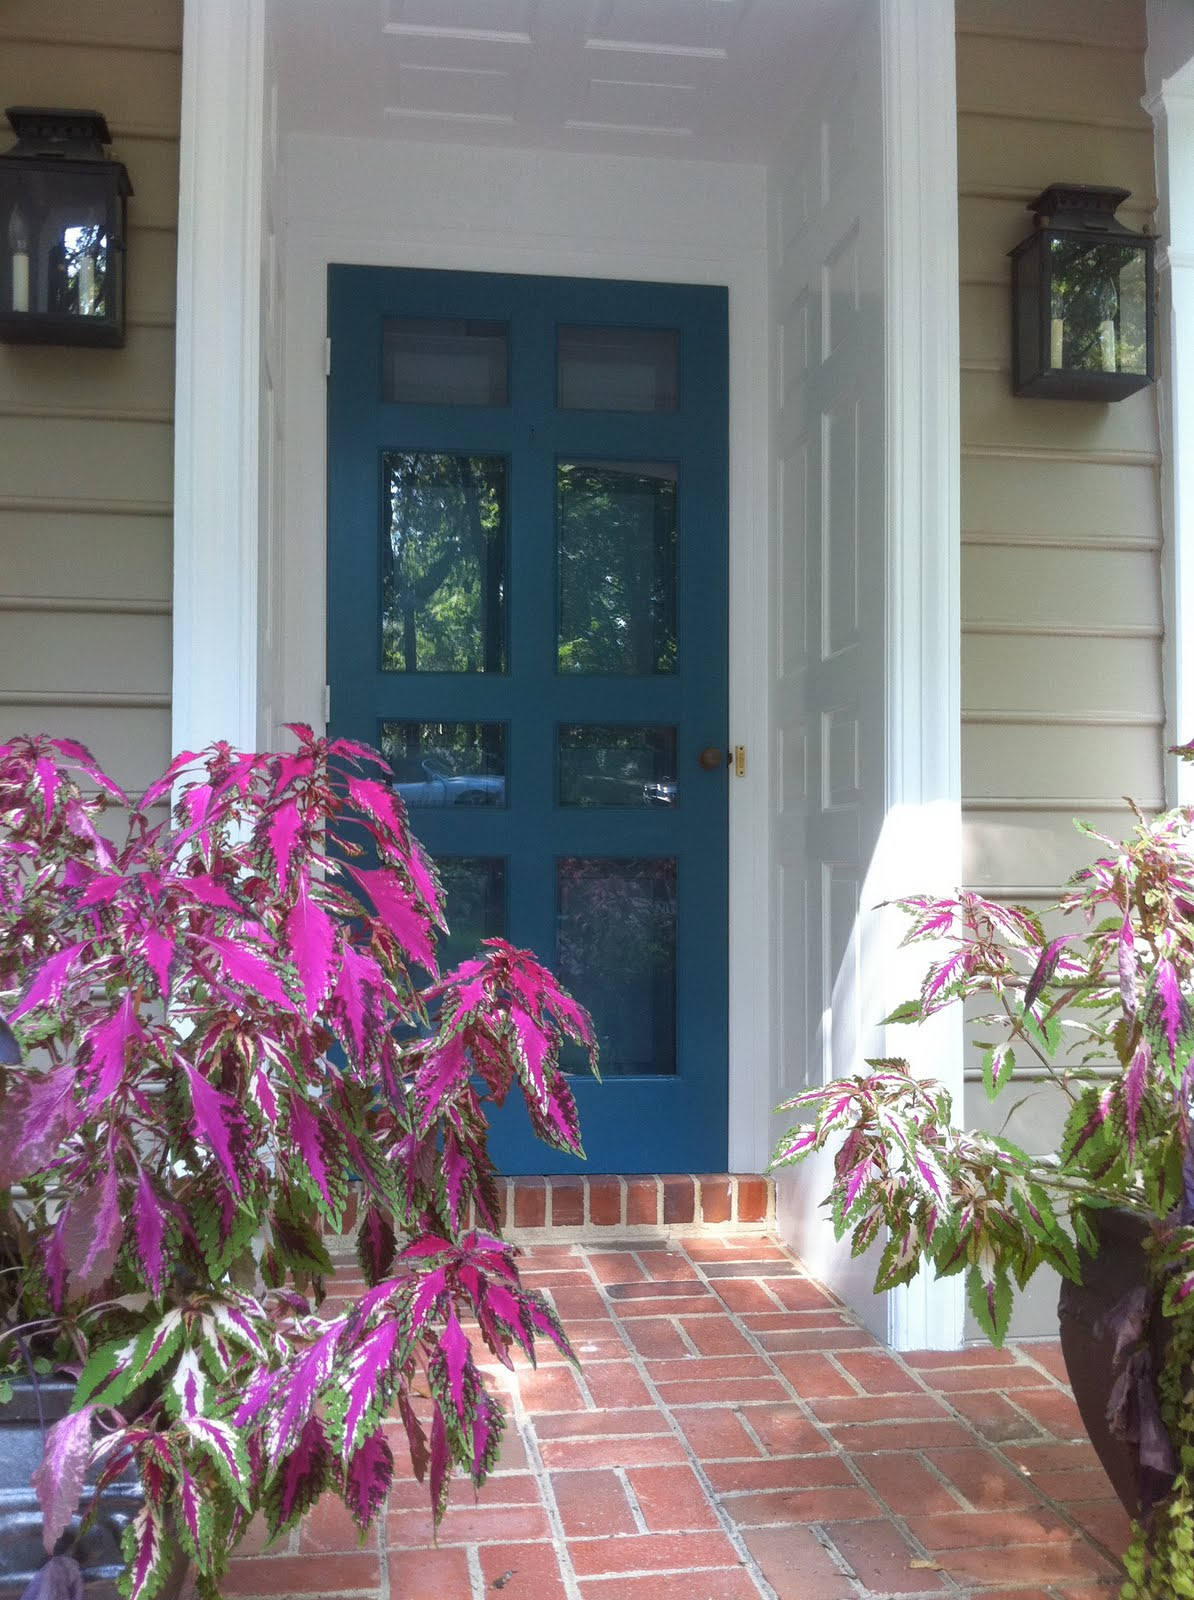 Bridget beari design chat exterior paint colors - Front door paint colors ...